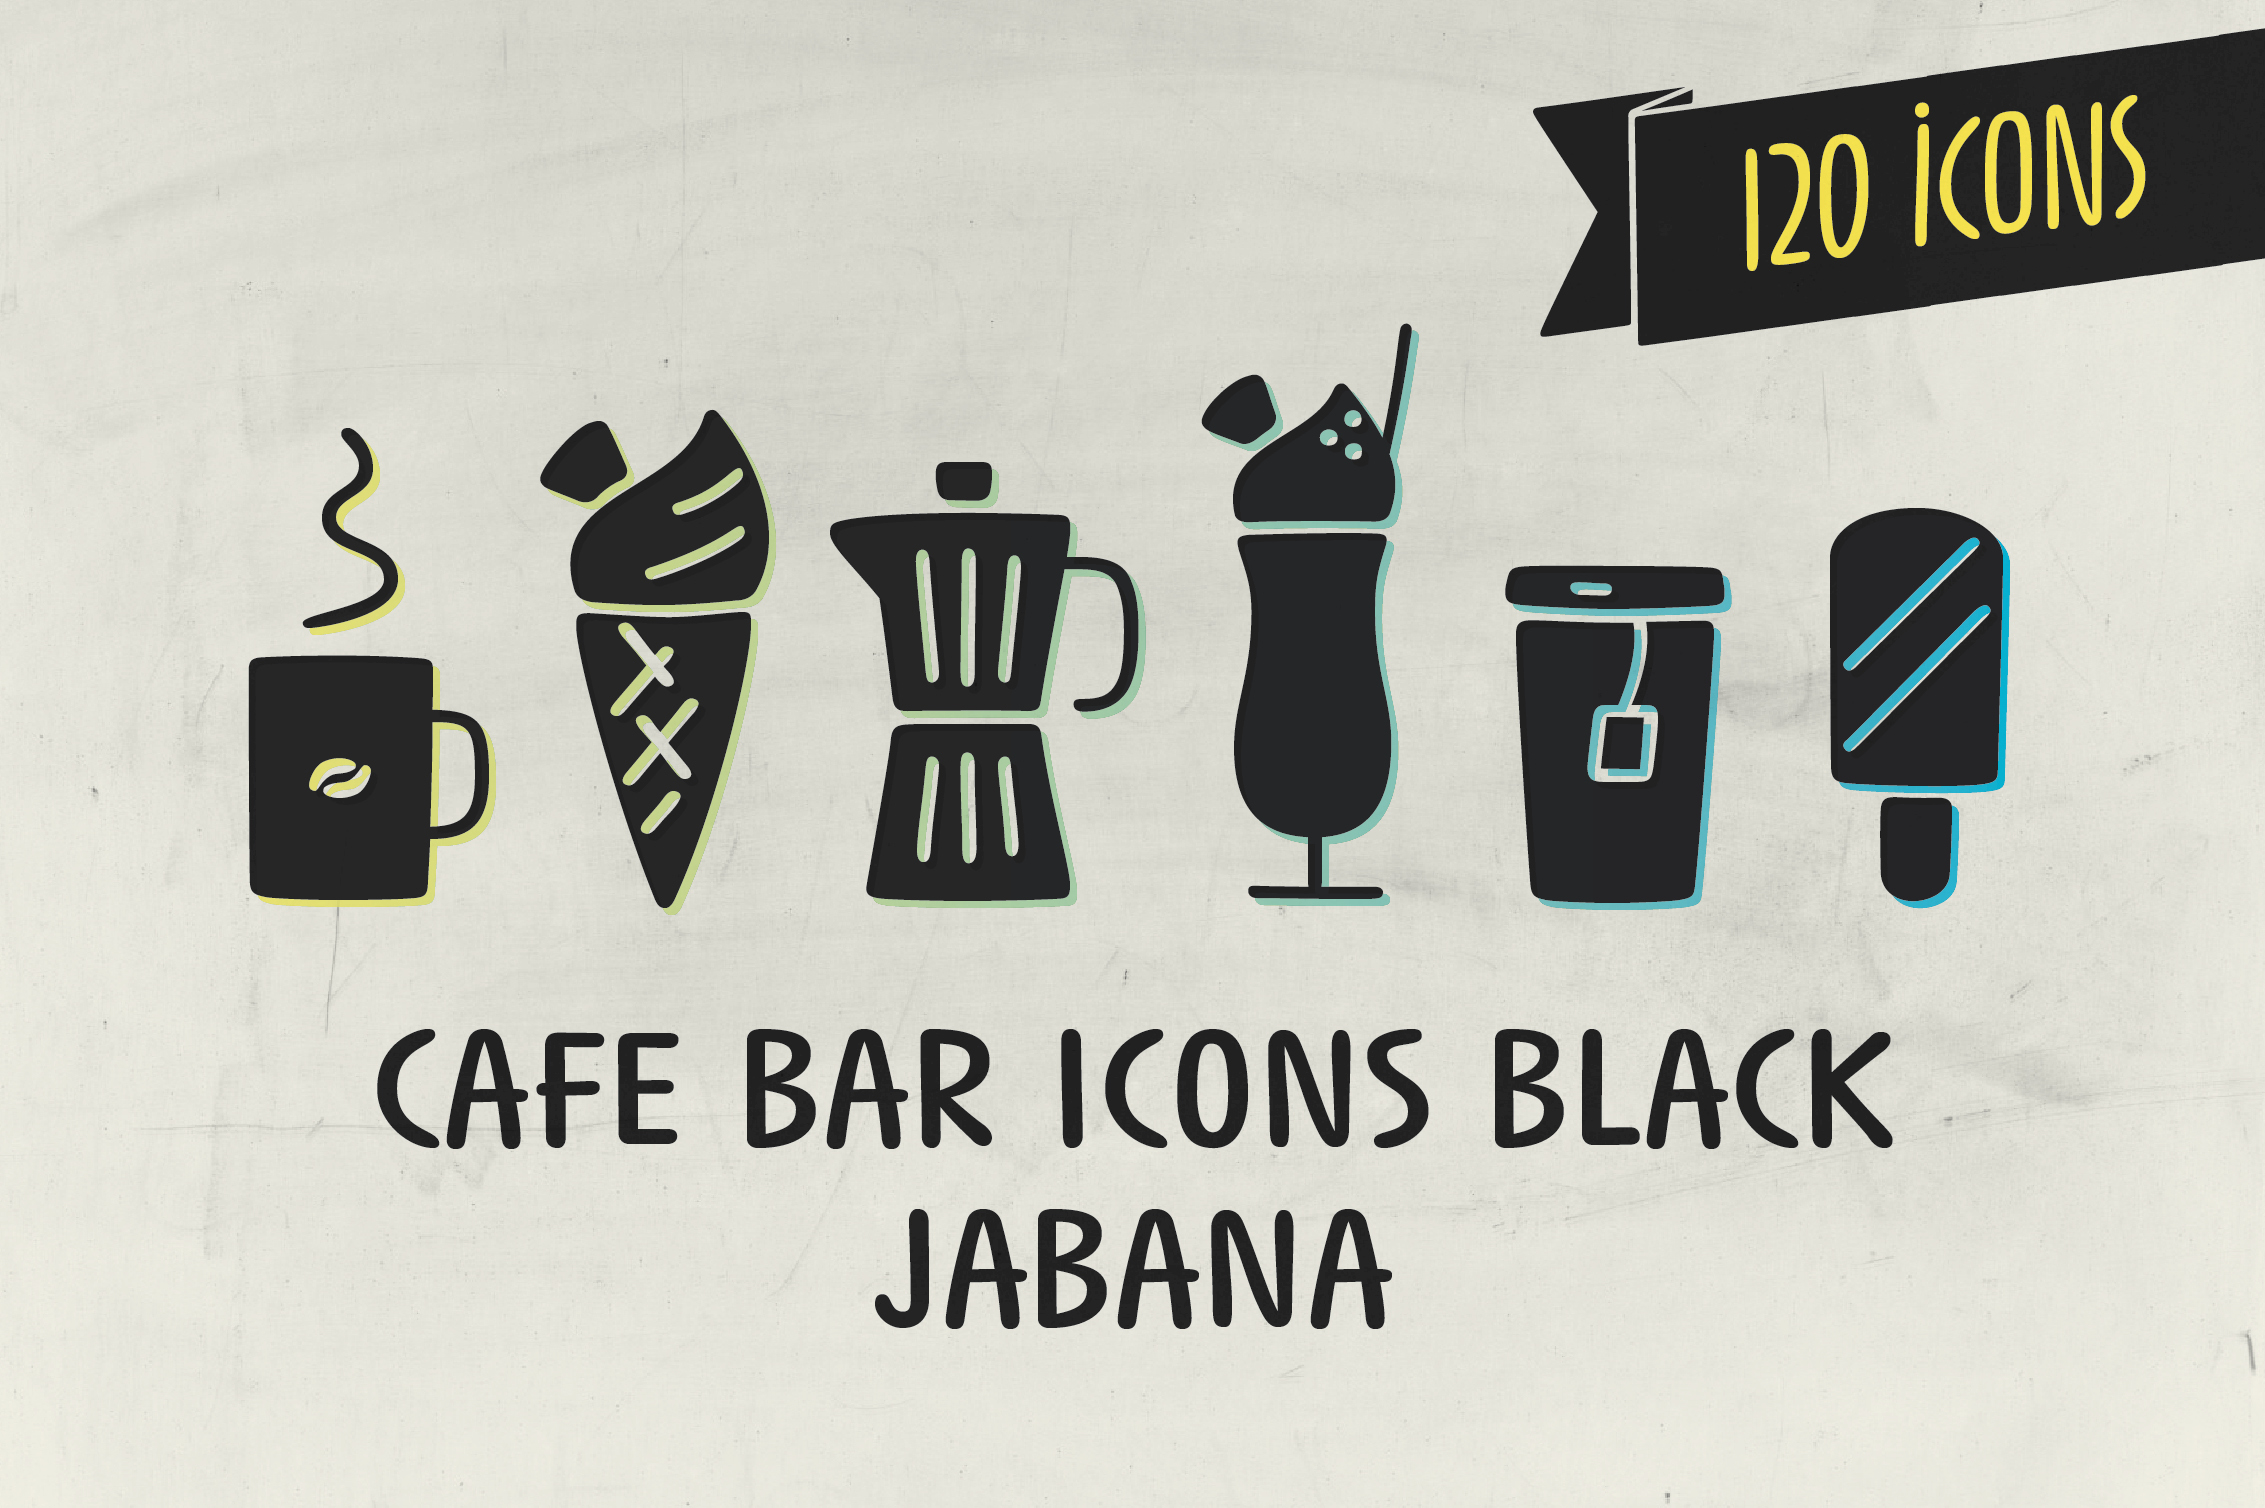 cafe bar icons black